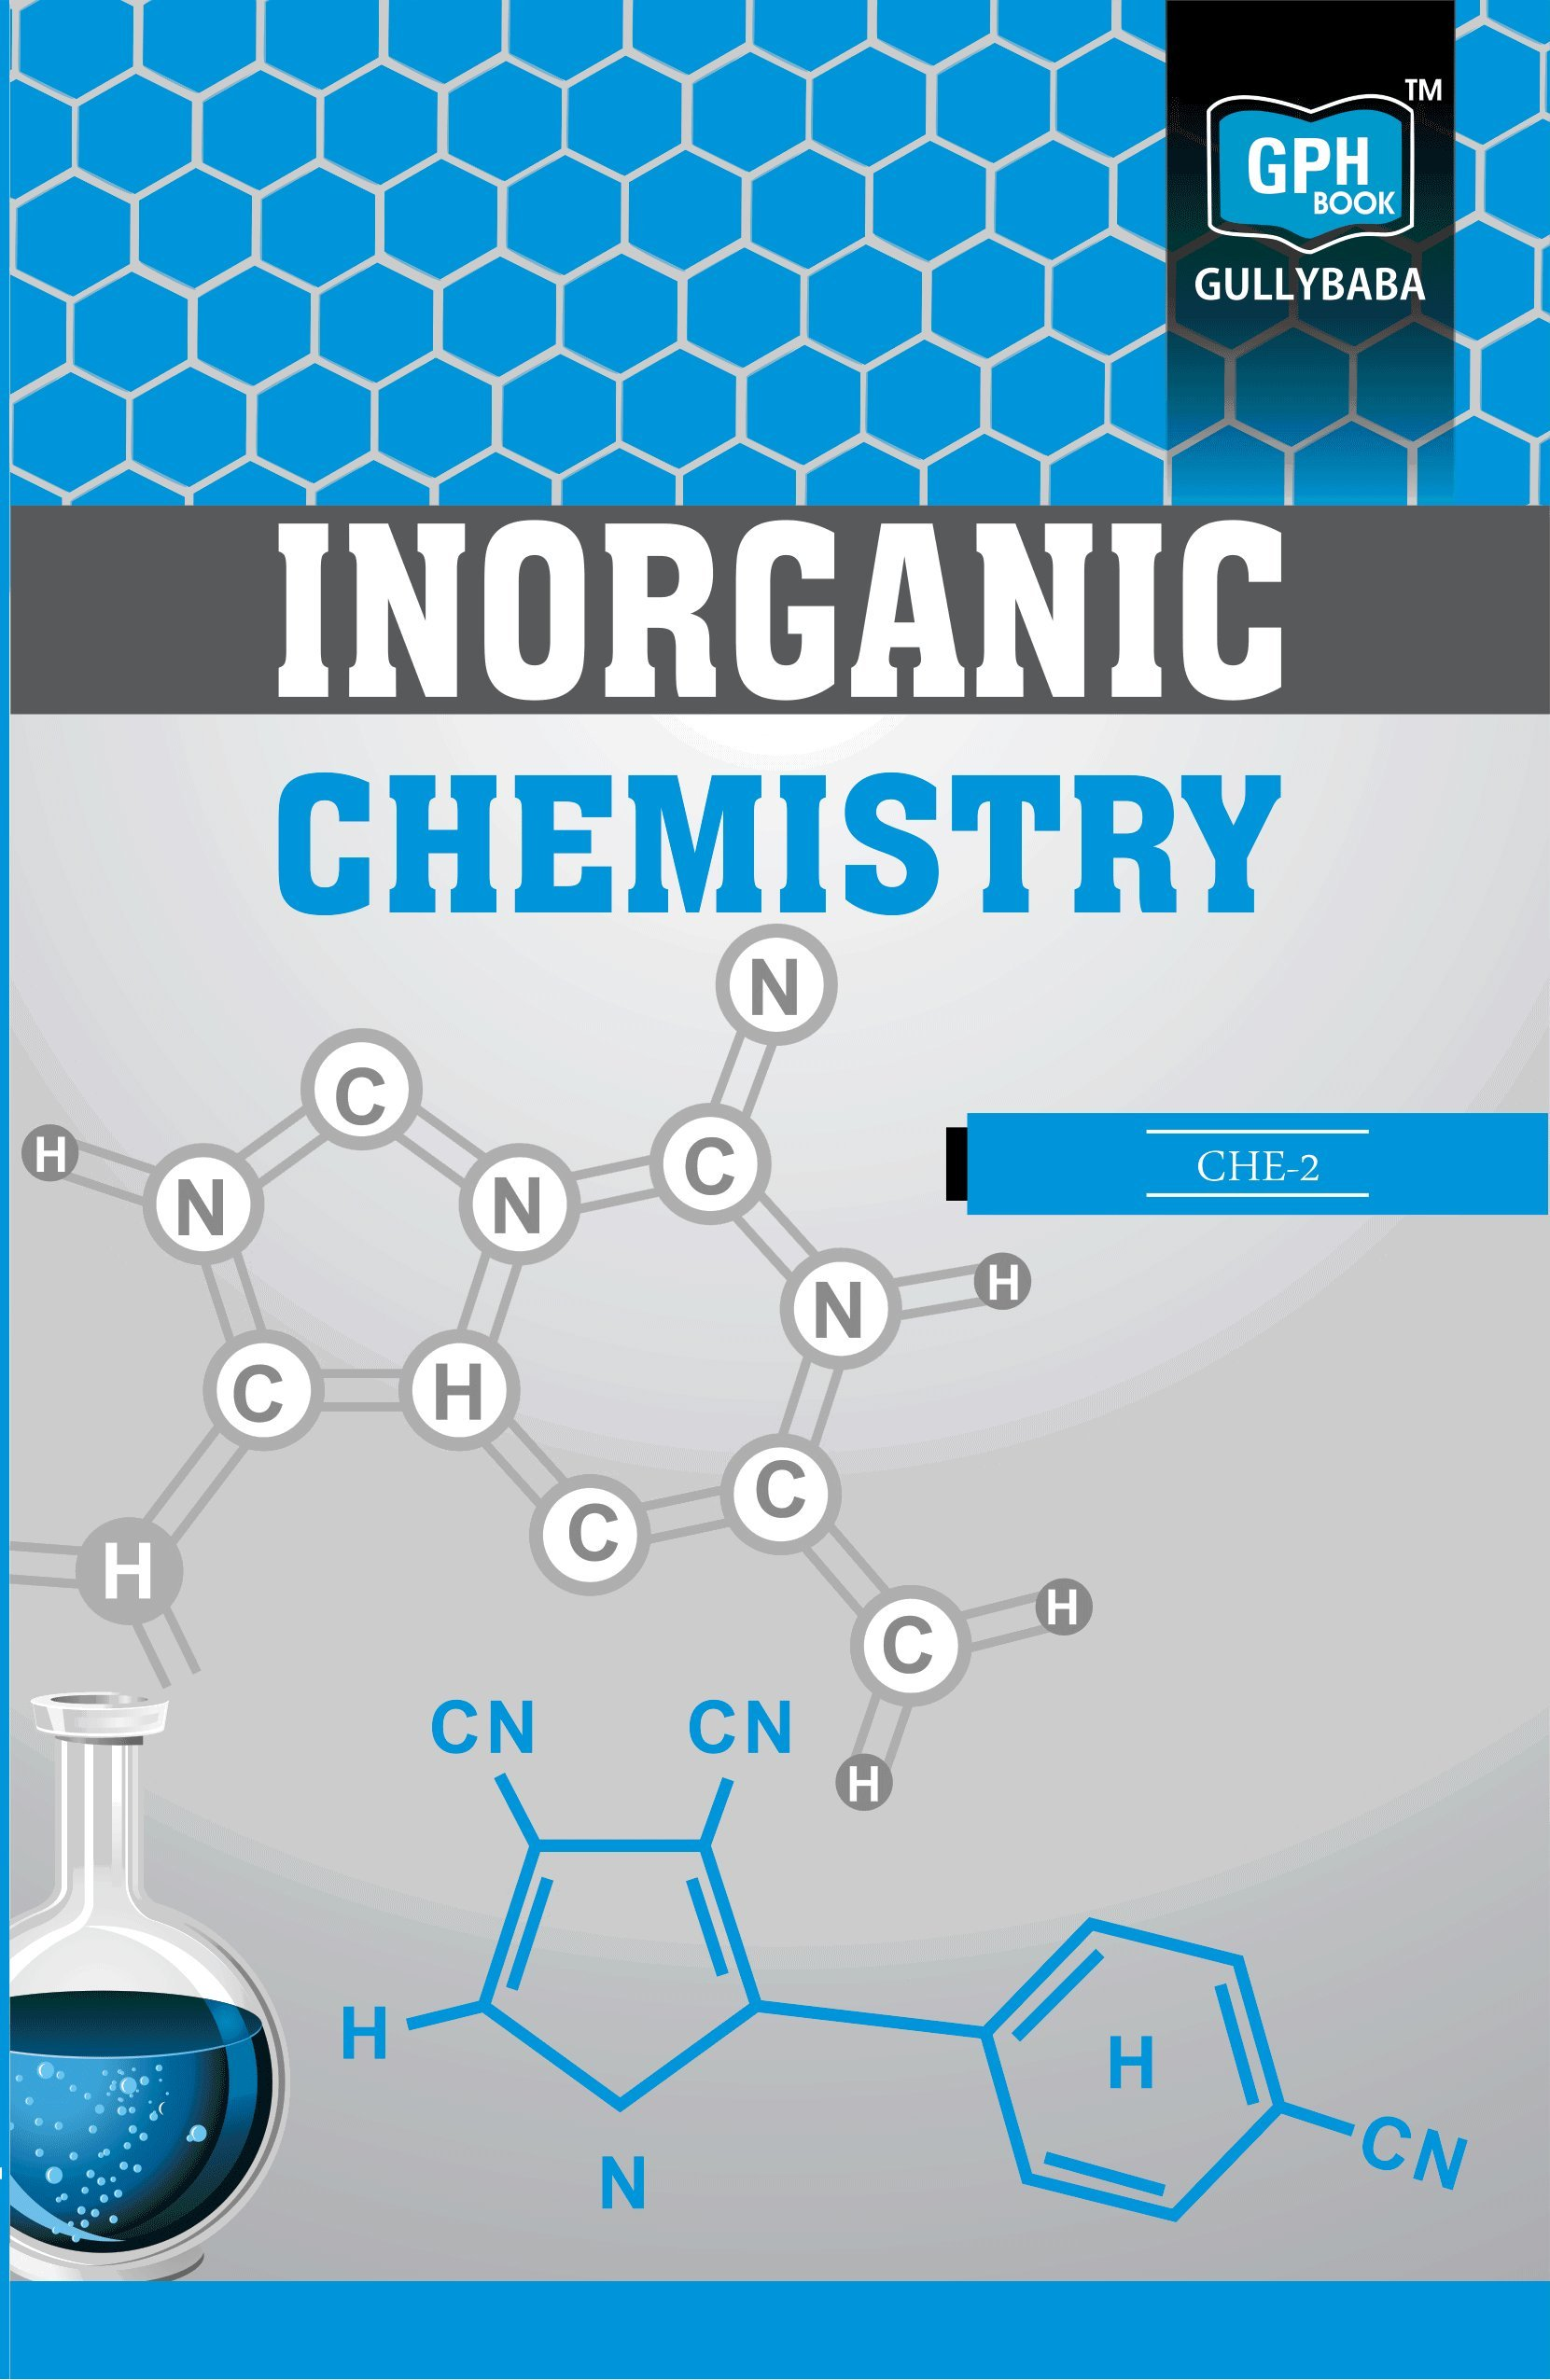 Ignou Che 01 Guide Ebook Pplato Flap Phys 54 Ac Circuits And Electrical Oscillations Free Solved Assignment Array Buy 02 Inoganic Chemistry Book Online At Low Prices In India Rh Amazon